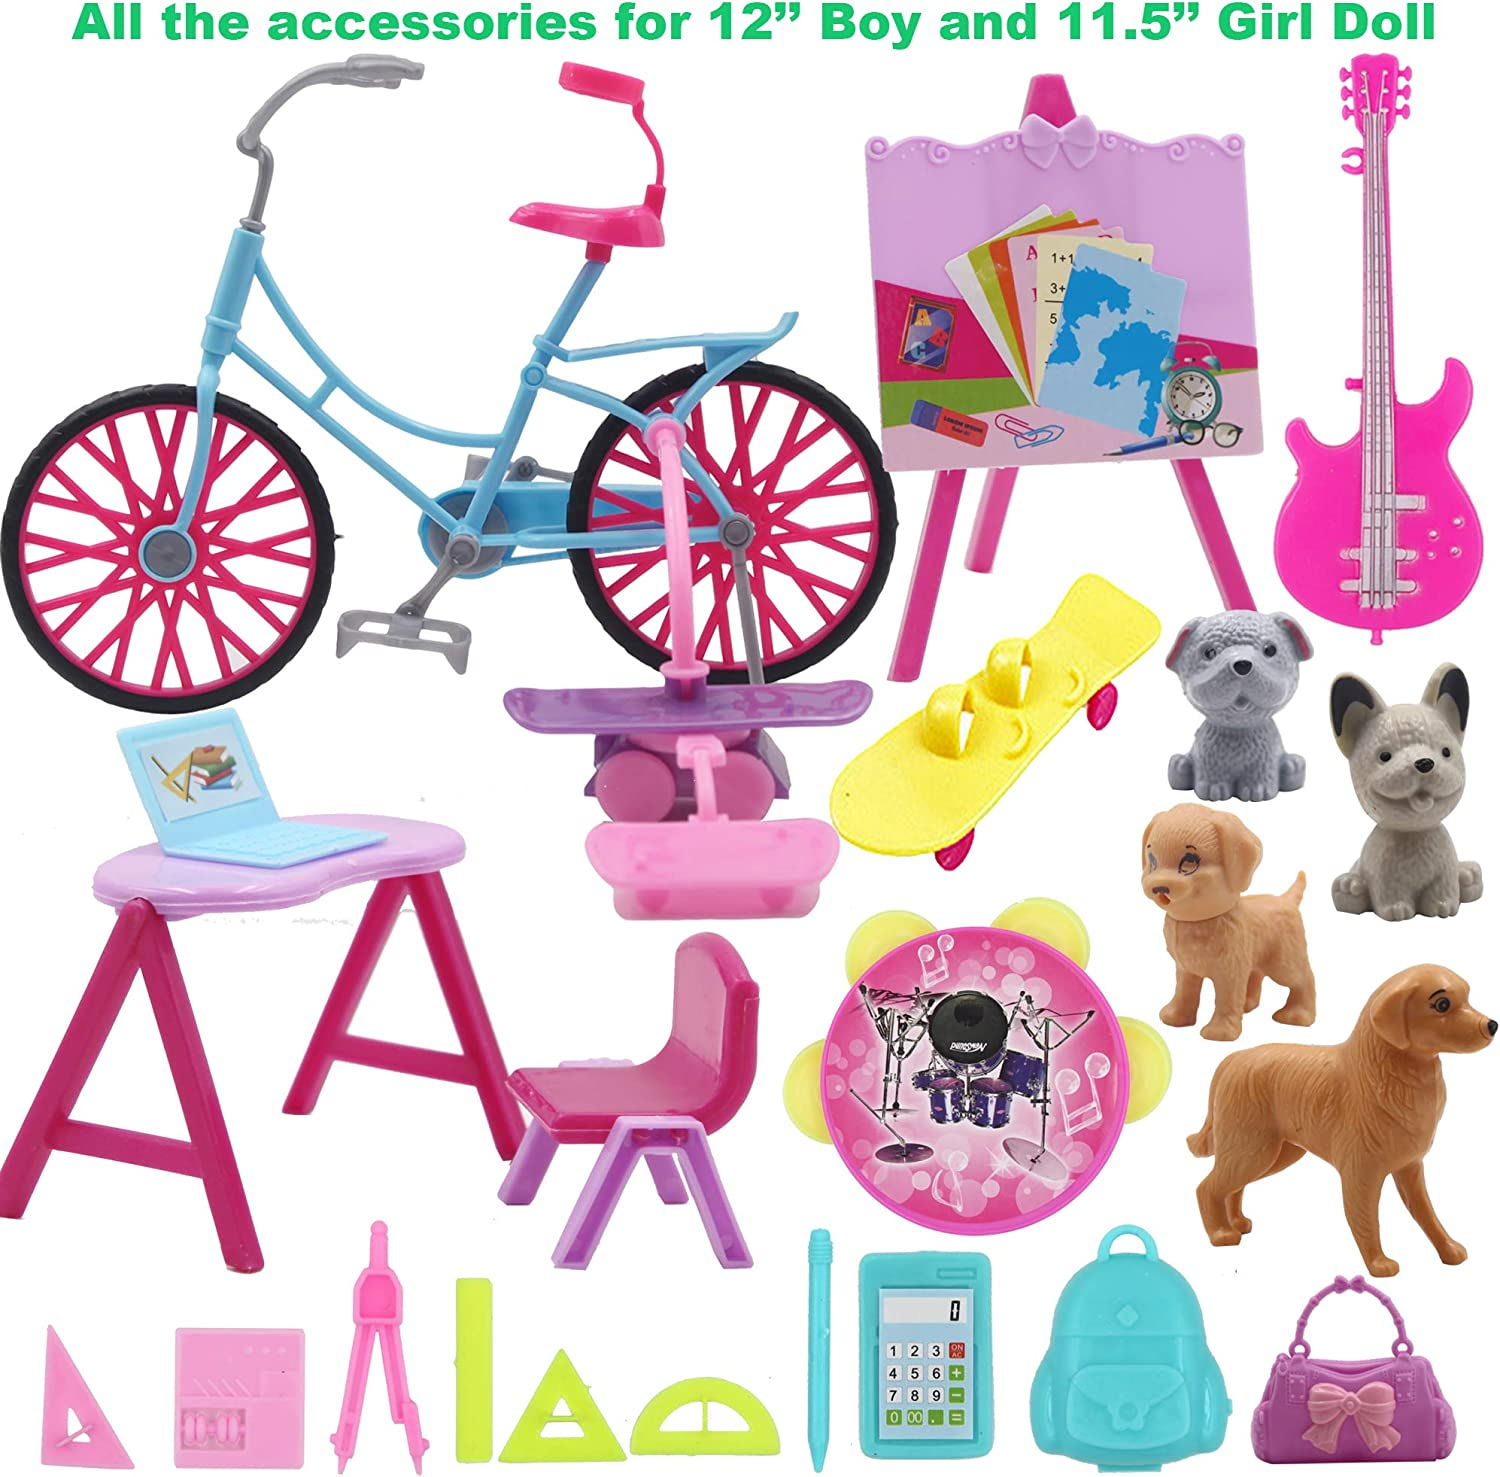 EuTengHao 12 Inch Boy and Girl Dolls Clothes and Campus Accessories Set with 26 Clothes Shirt Dresses Graduation Gown Outfits Shoes fit for 11.5 Girl Boy Dolls Bicycle Guitar Animal School Supplies